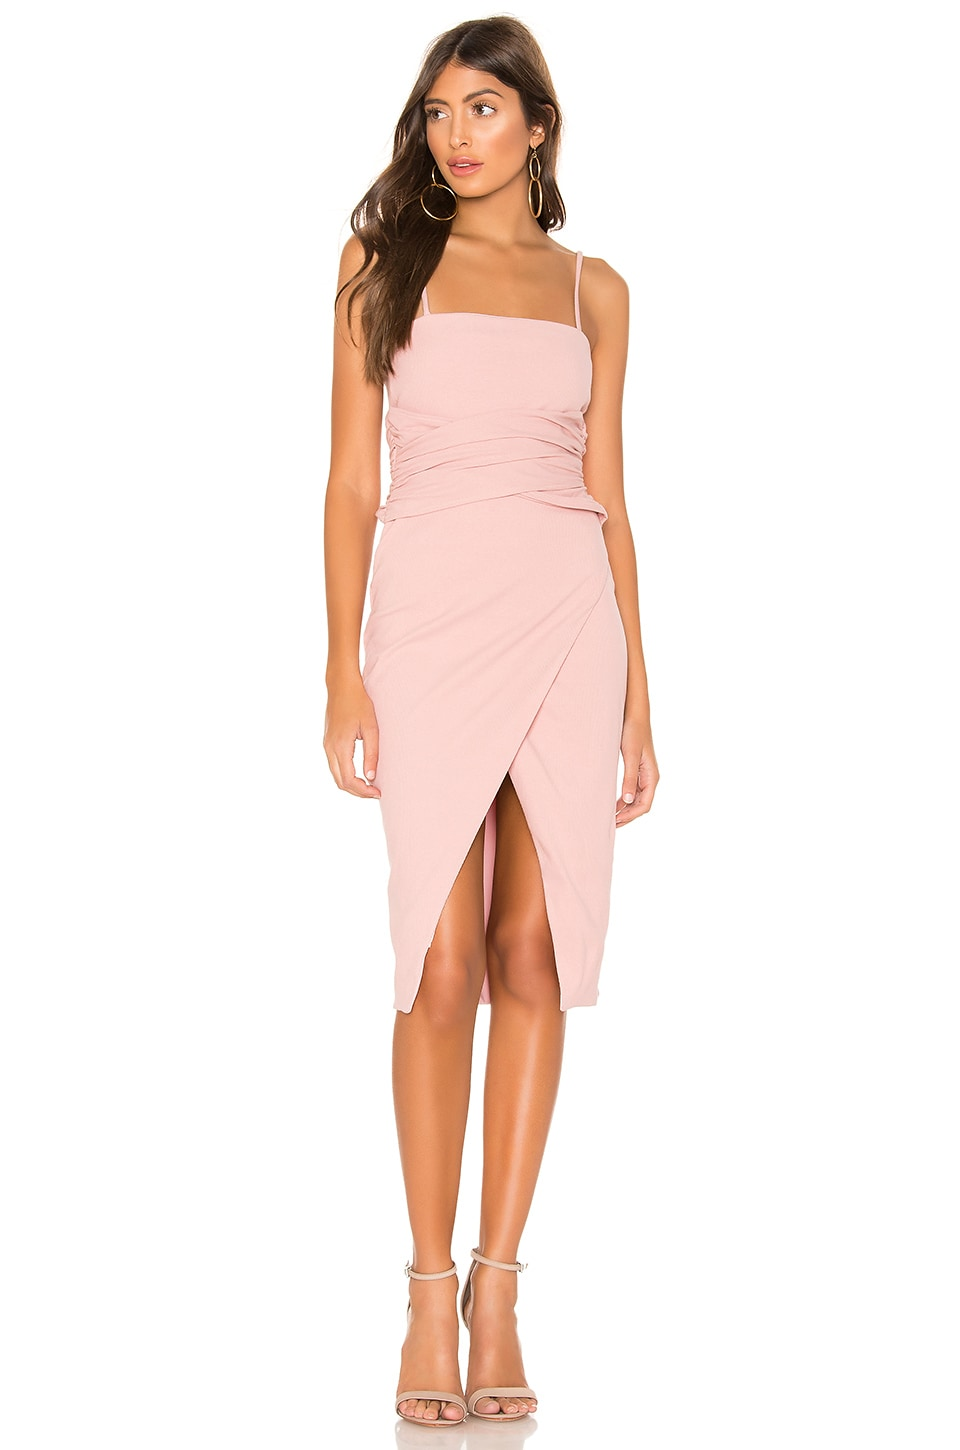 Privacy Please Rhoda Midi Dress in Mauve